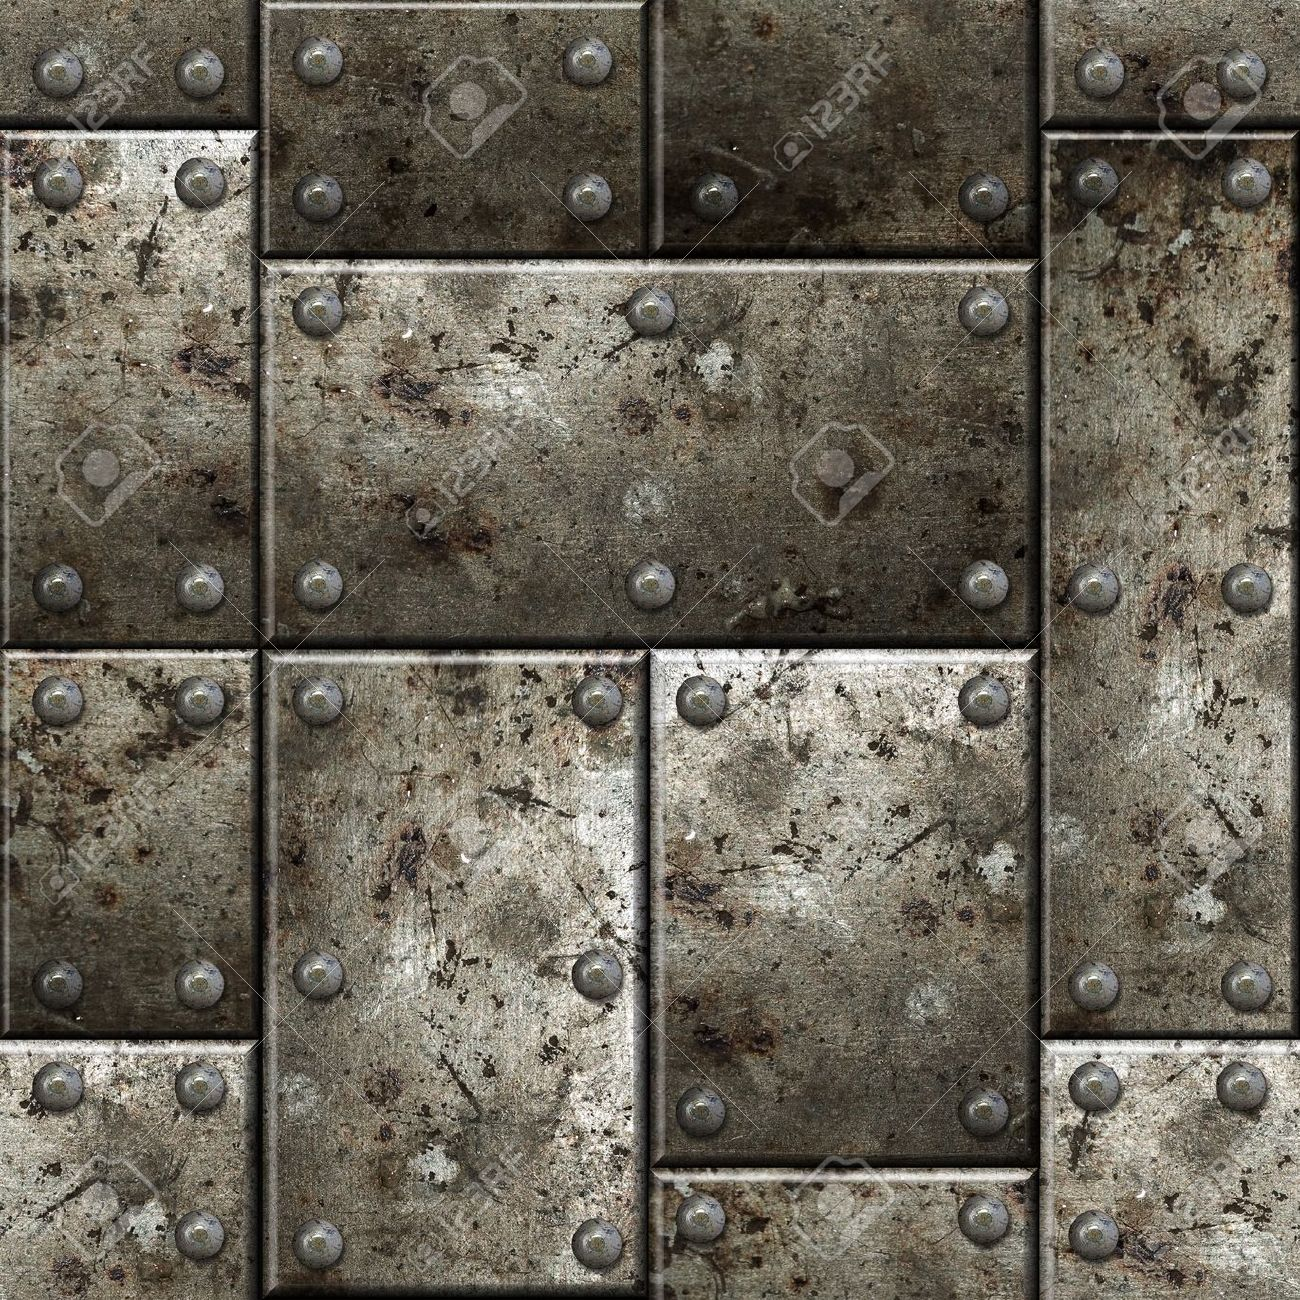 12344082-Armor-seamless-texture-background-See-more-seamlessly-backgrounds-in-my-portfolio–Stock-Photo